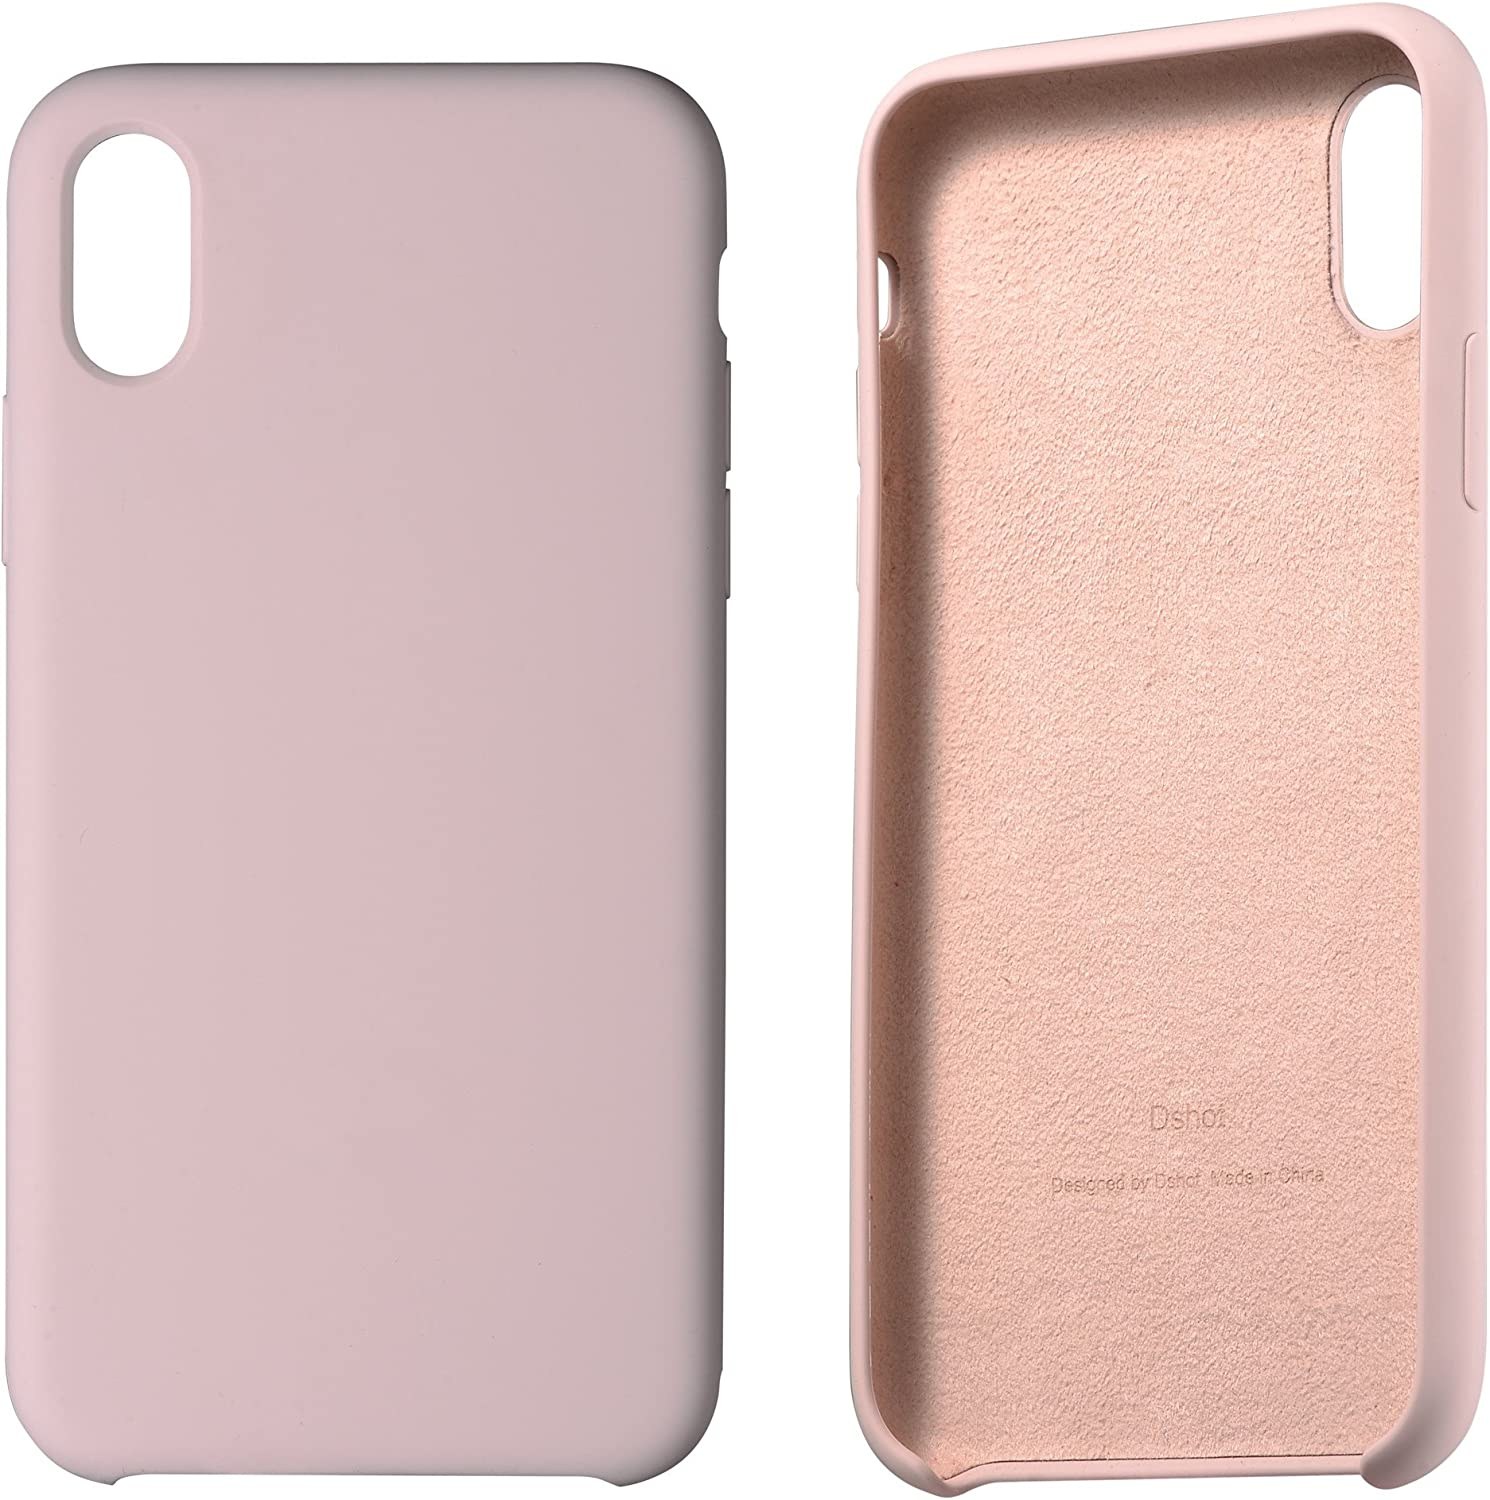 iPhone X case,iPhone 10 Shockproof Case, Liquid Silicone Gel Rubber Slim Fit Soft Mobile Phone Case with Microfiber Cloth Lining Cushion for Apple iPhone X iPhone 10 (M2-Pink)